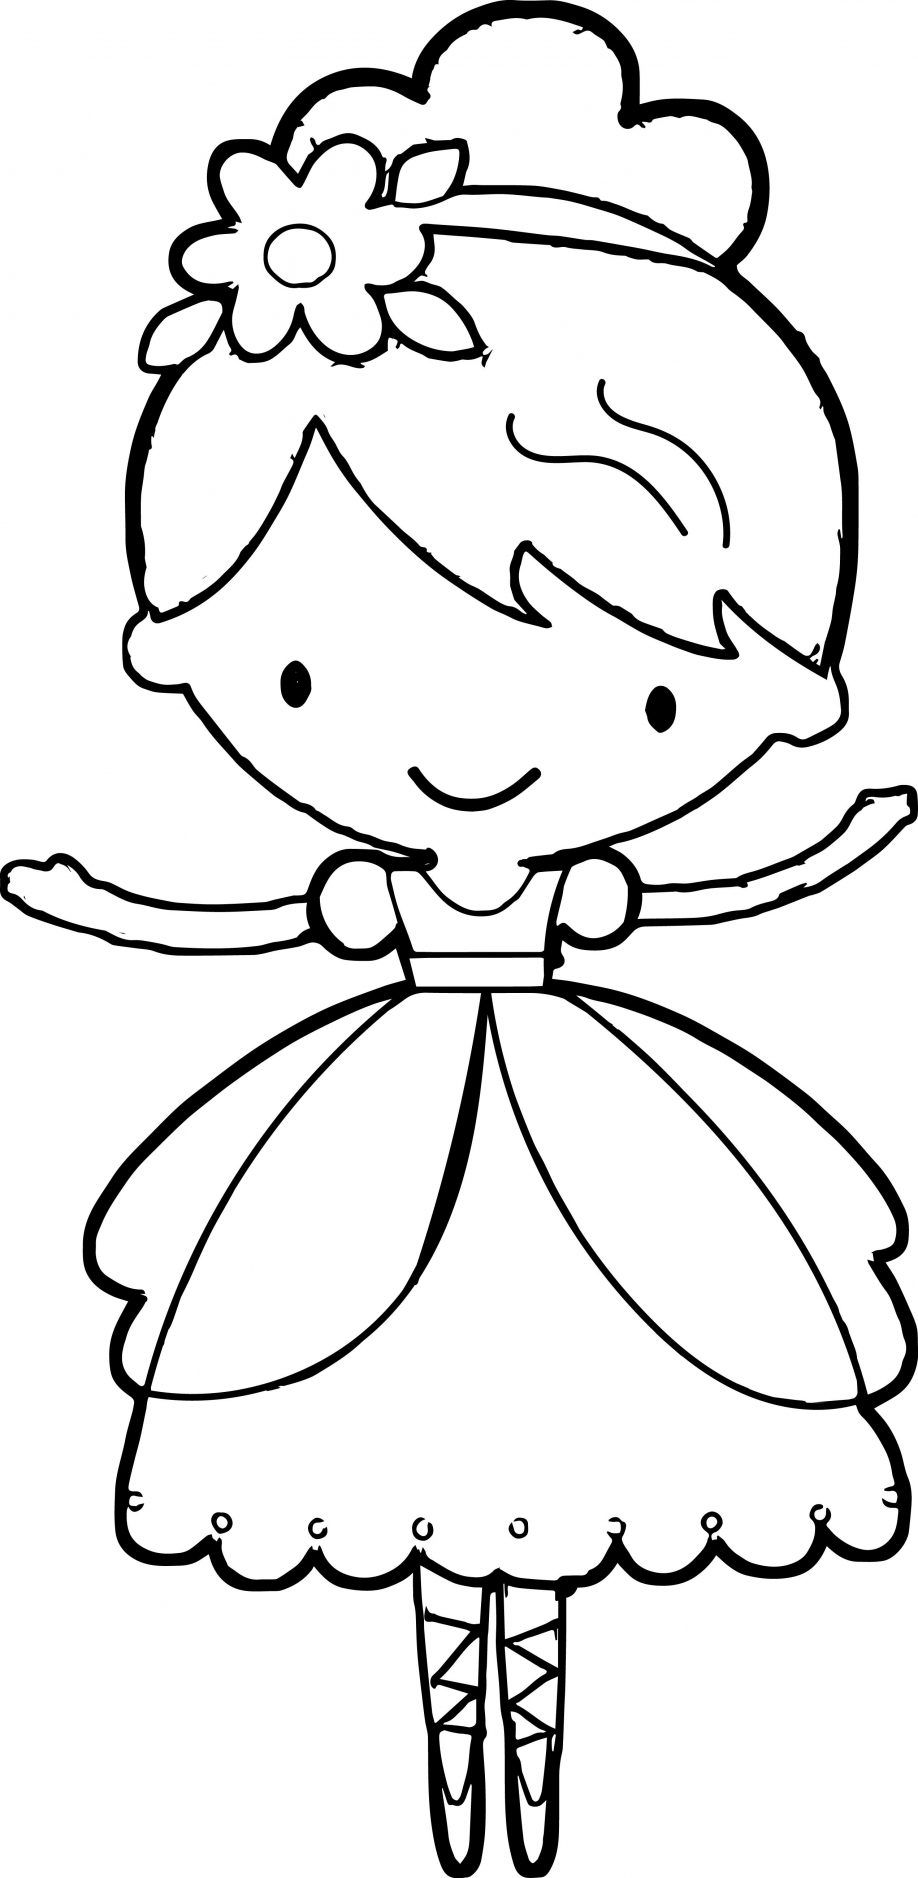 ballerina coloring pictures read moreprintable ballerina coloring pages for kids ballerina coloring pictures